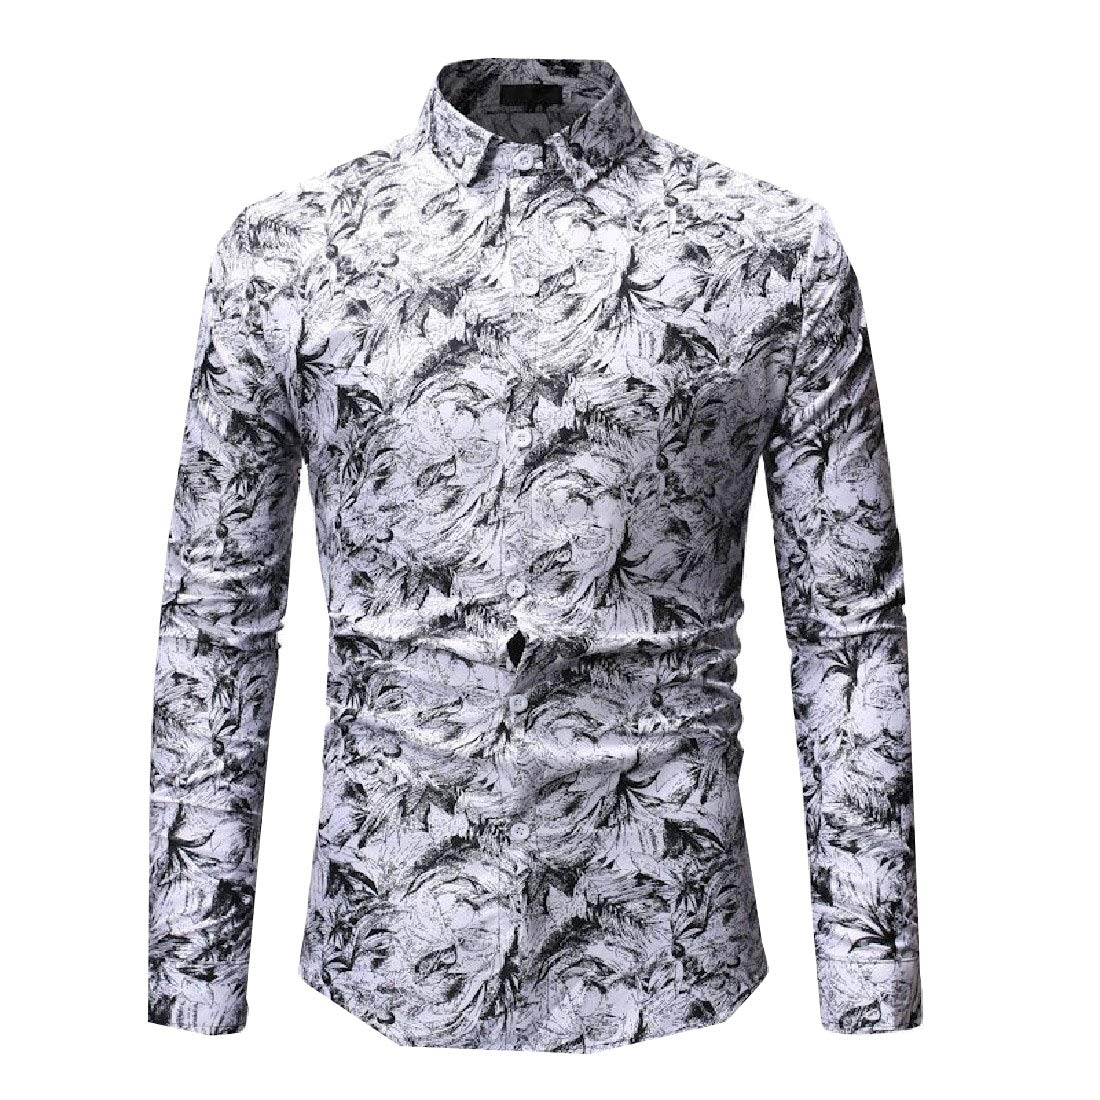 Zimaes-Men Printed Turn-Down Collar Long-Sleeve Causal Button Down Shirt